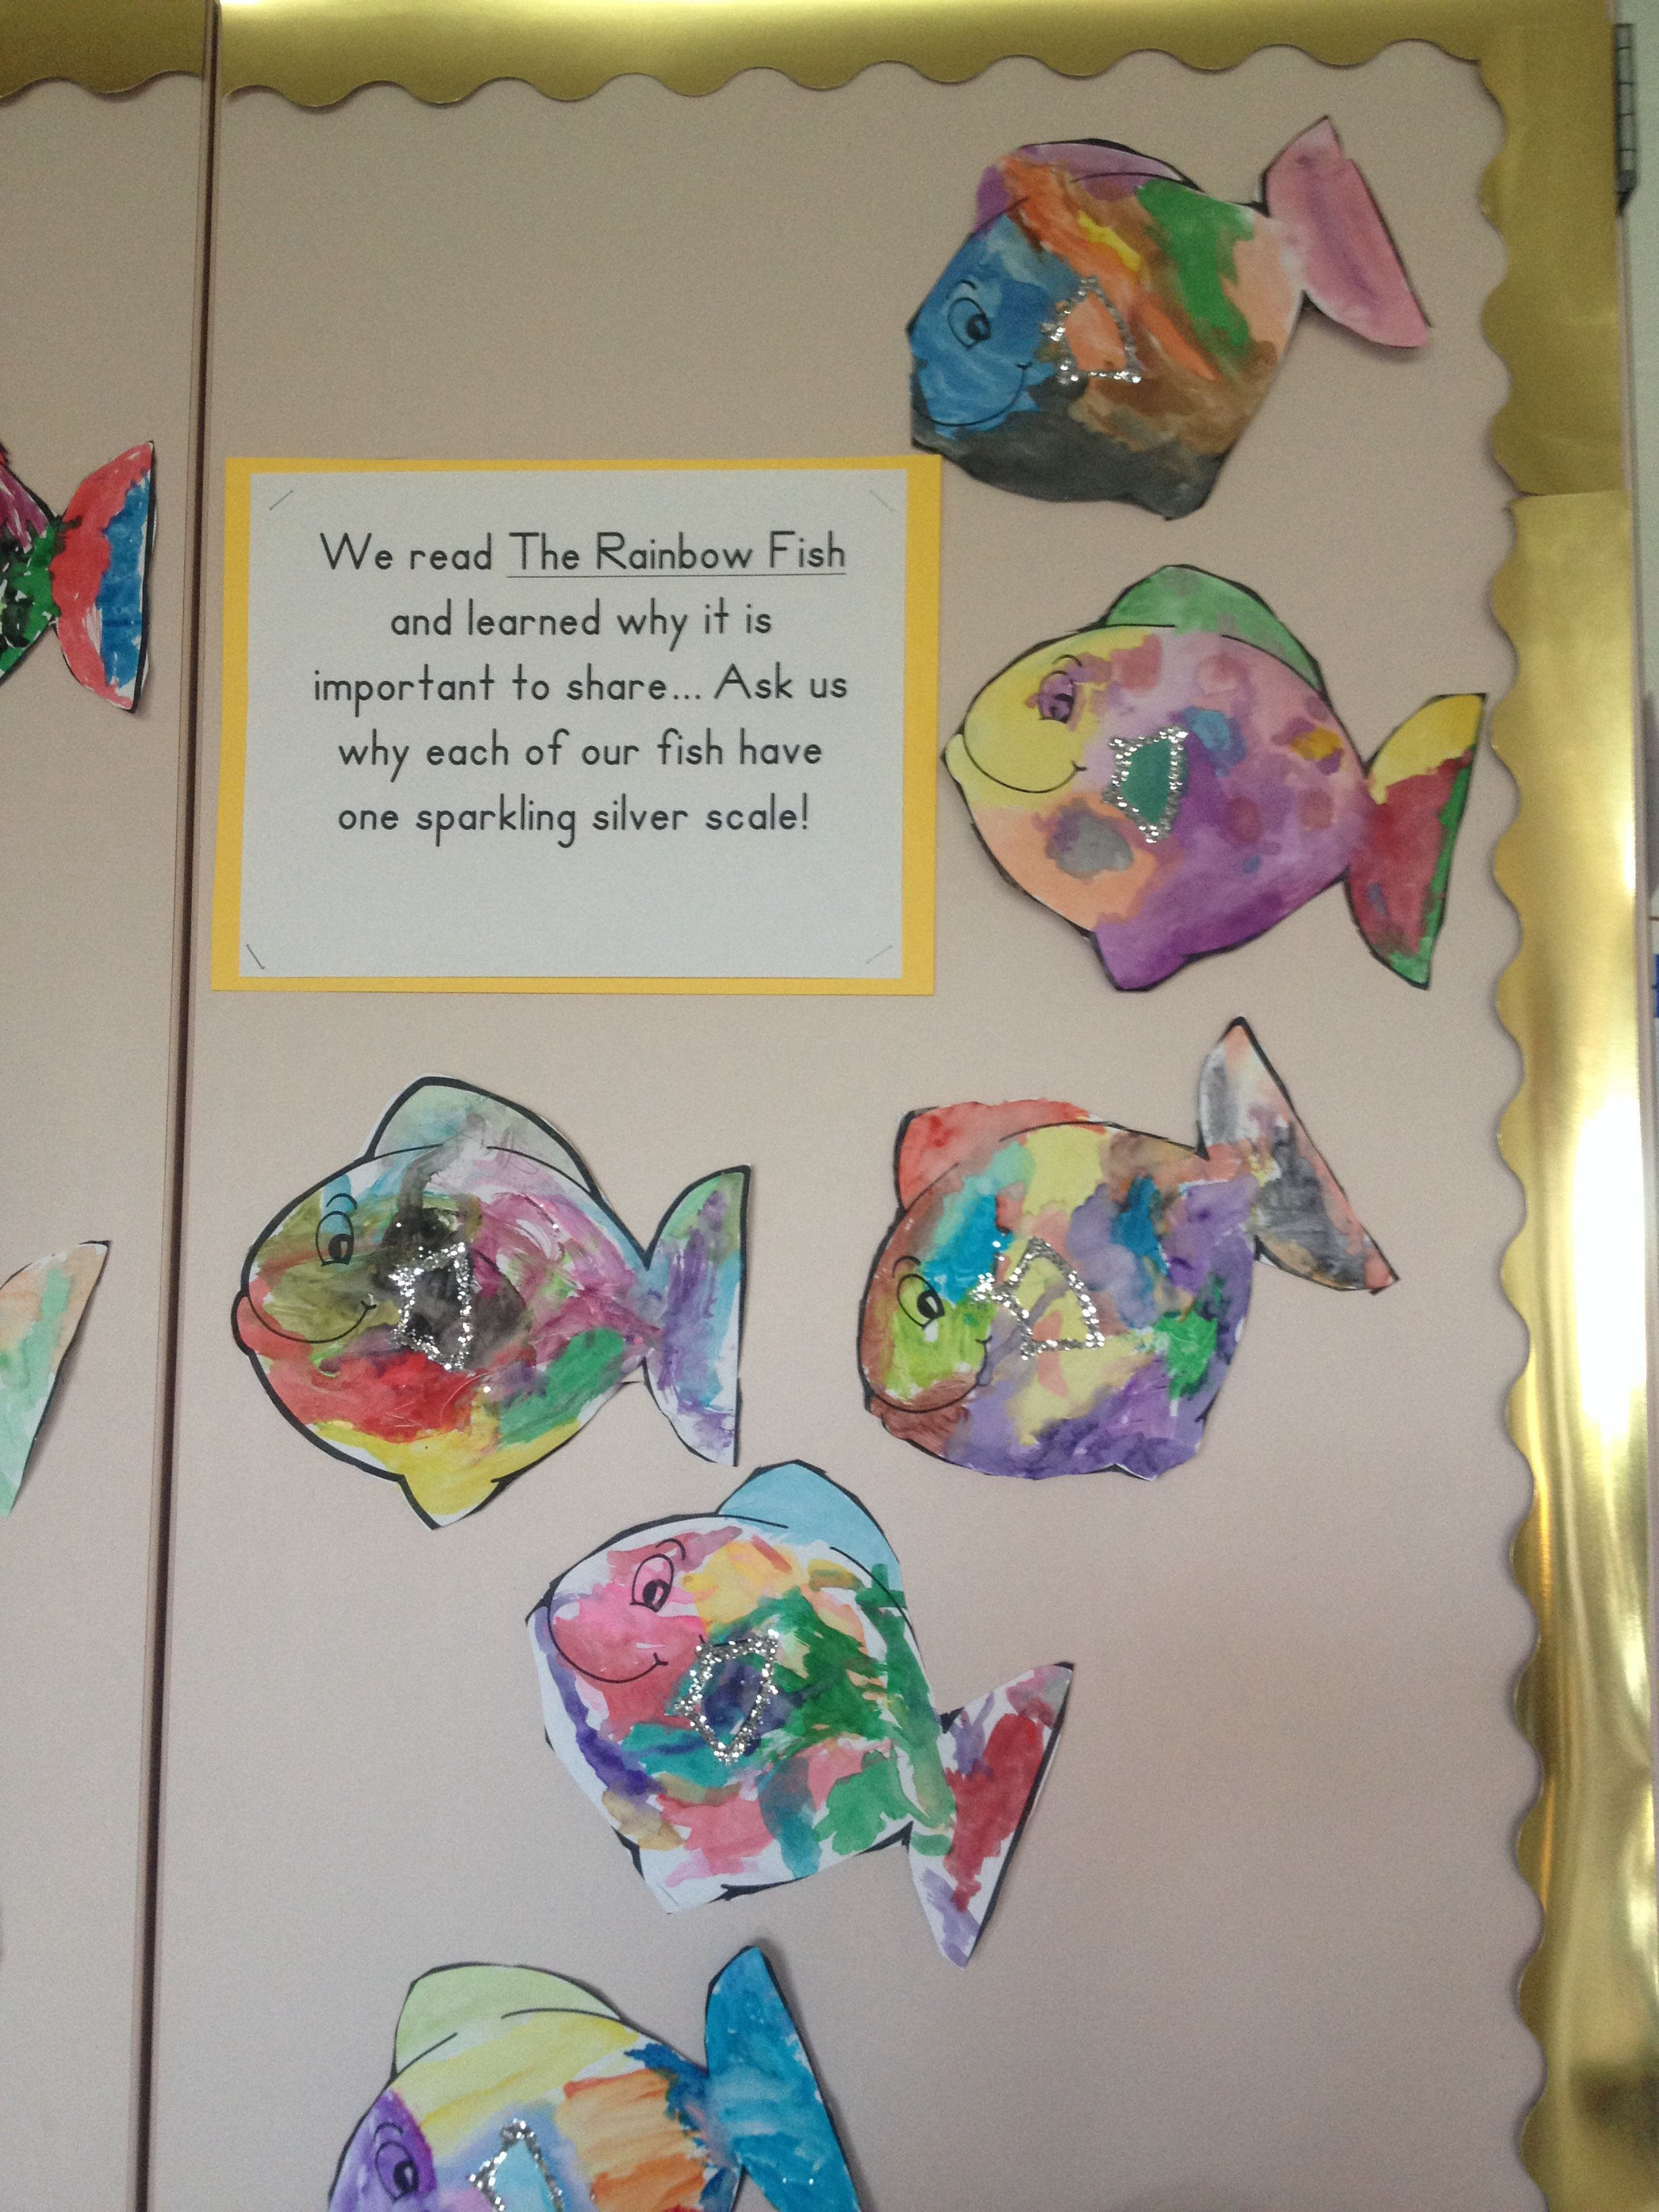 The Rainbow Fish Activity